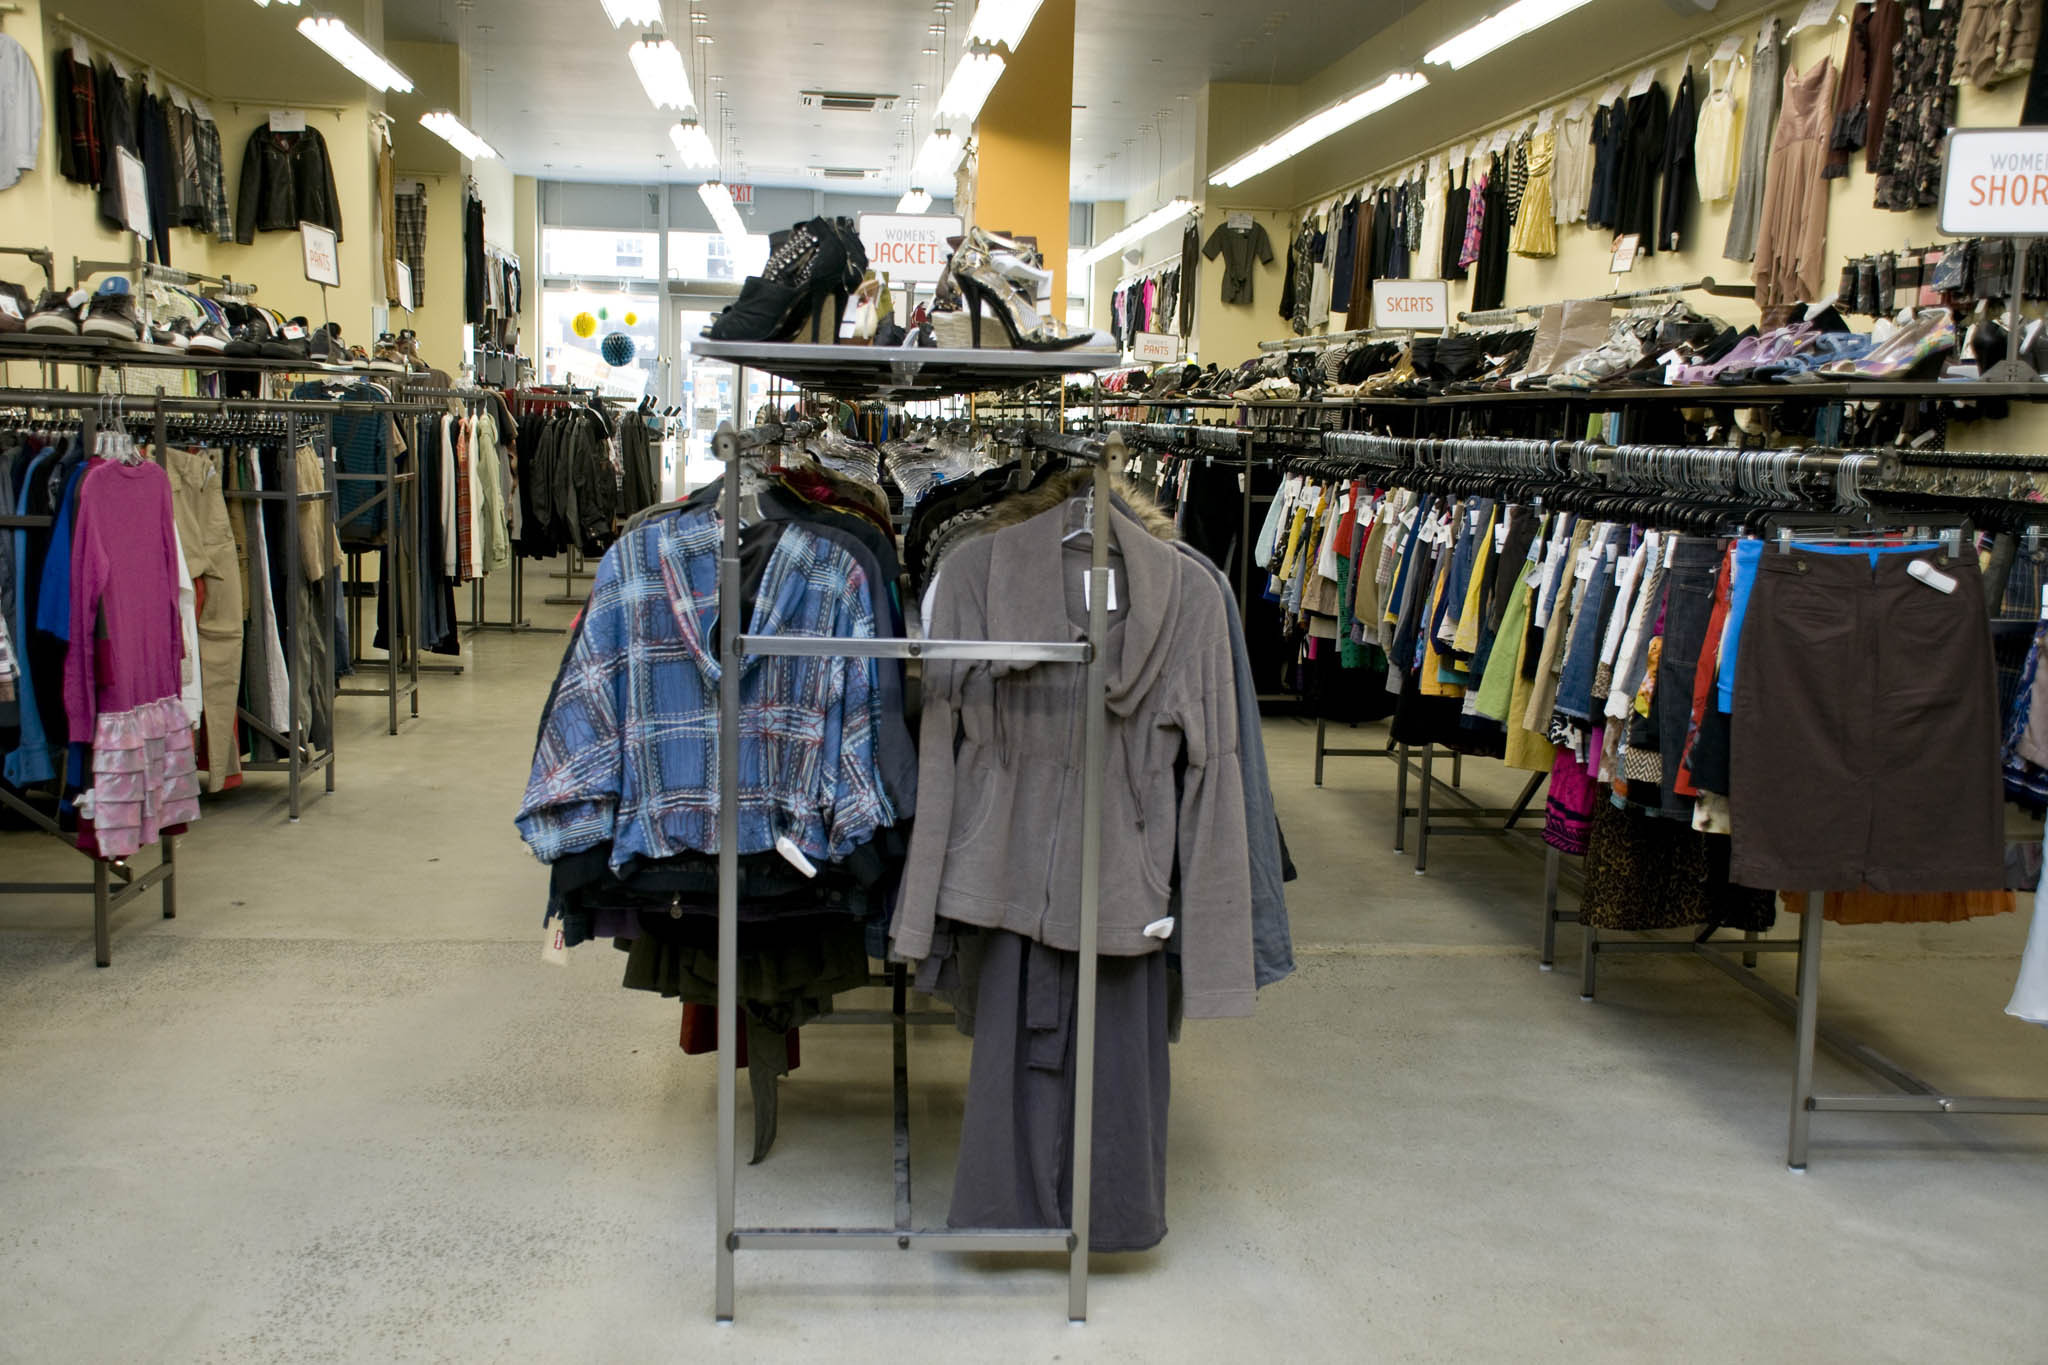 The net clothing store in the gallery